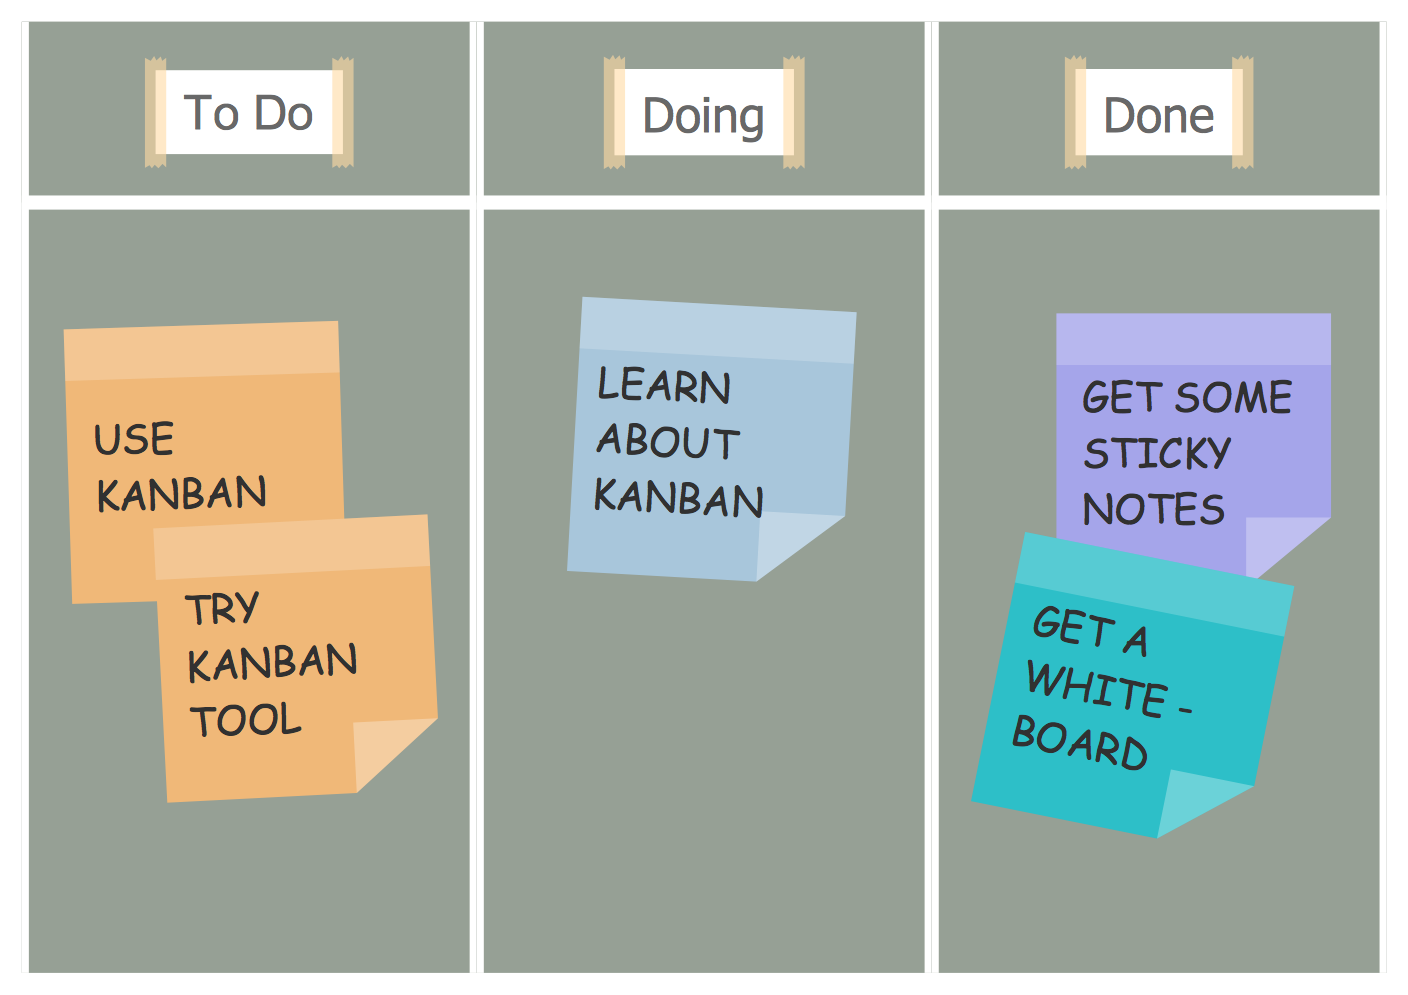 Scrum Board Suggesting to Use Kanban